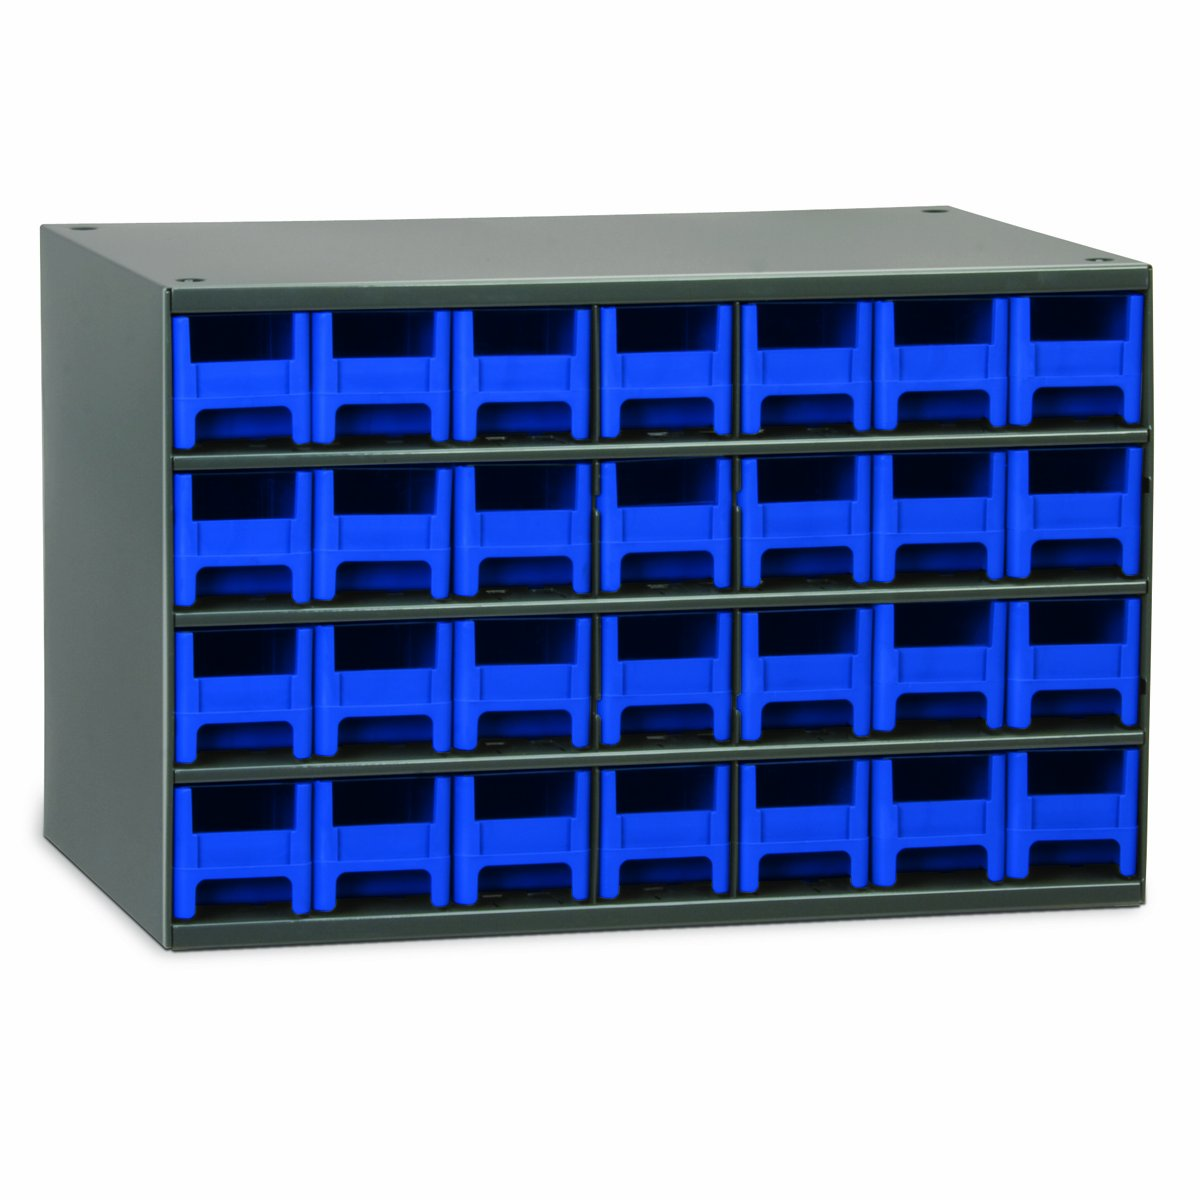 Akro-Mils 19228 17-Inch W by 11-Inch H by 11-Inch D 28 Drawer Steel Parts Storage Hardware and Craft Cabinet, Blue Drawers